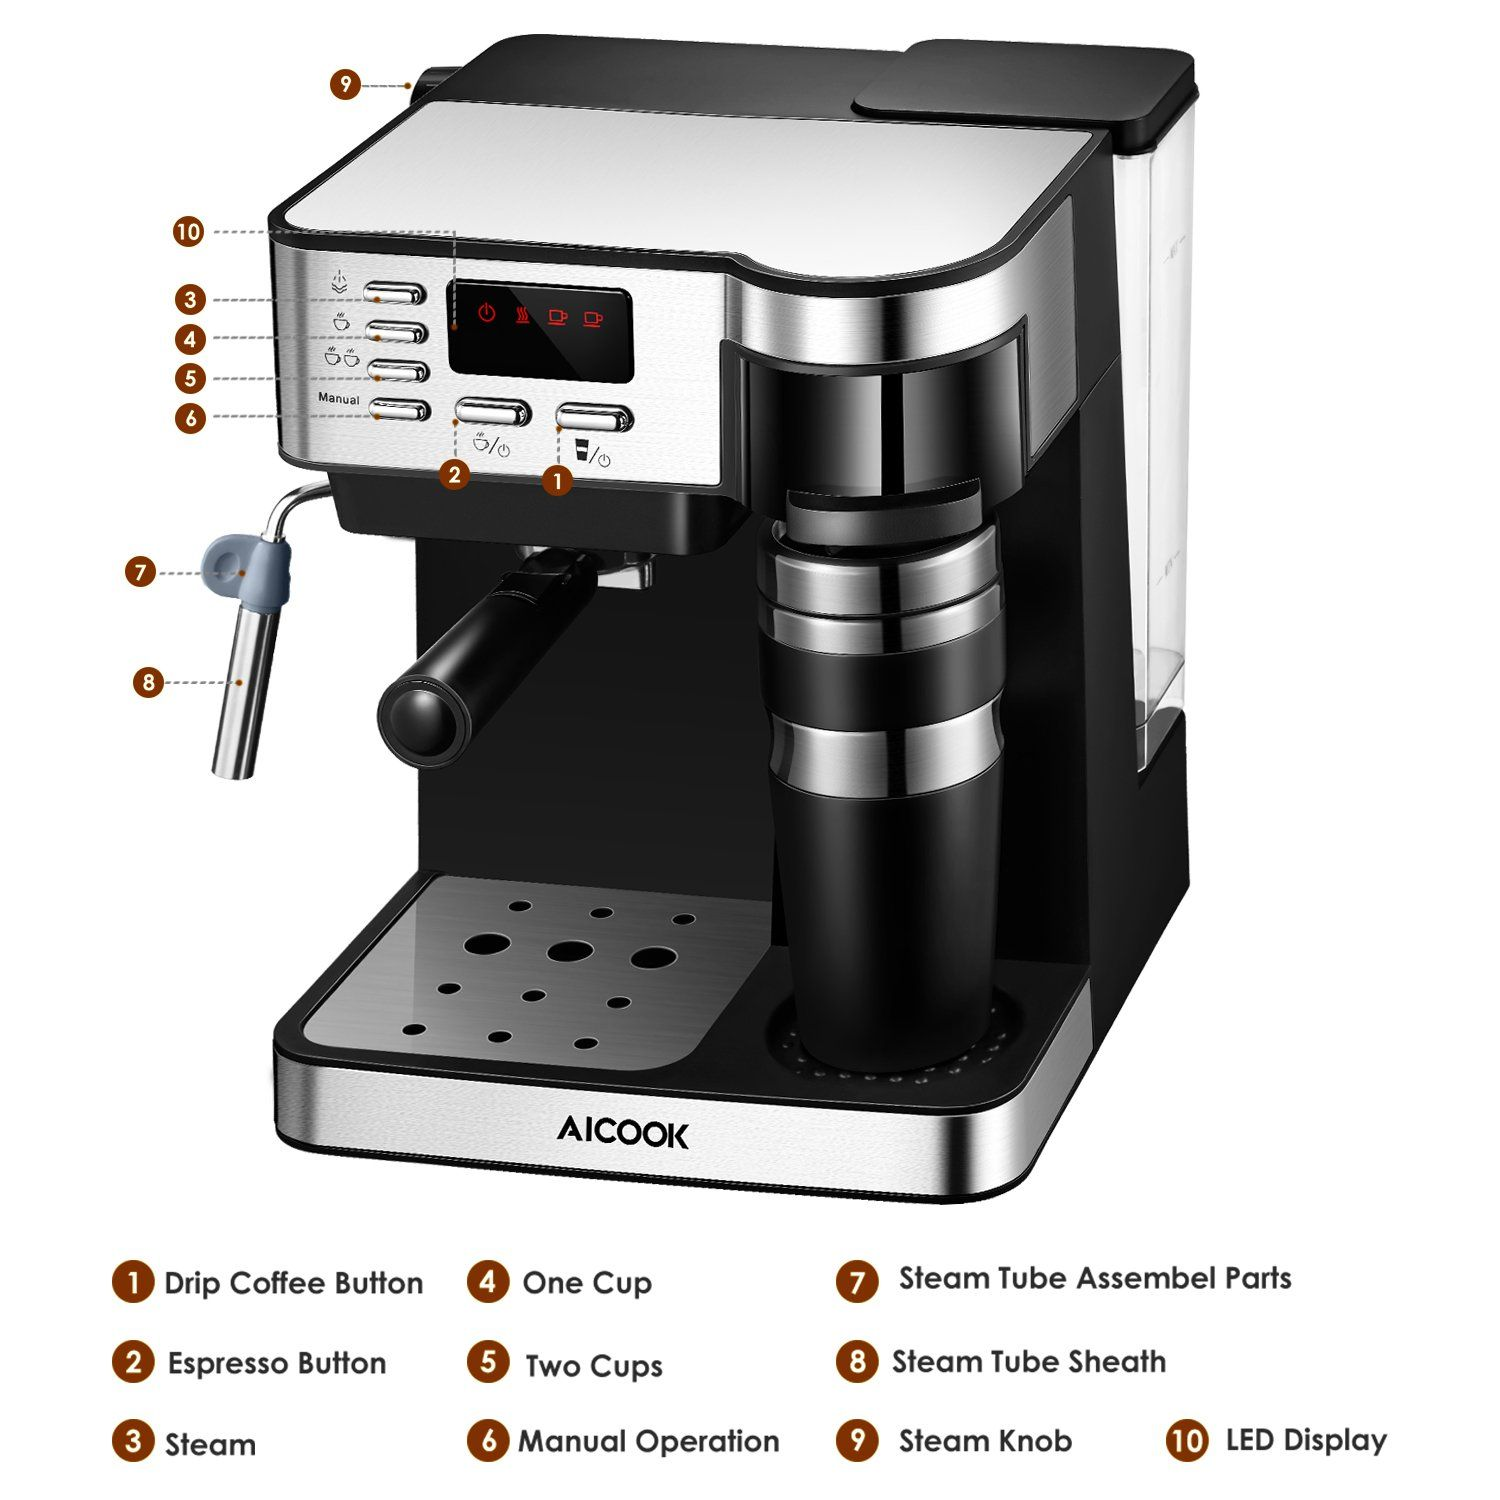 AICOOK Espresso and Coffee Machine 3 in 1 Combination 15